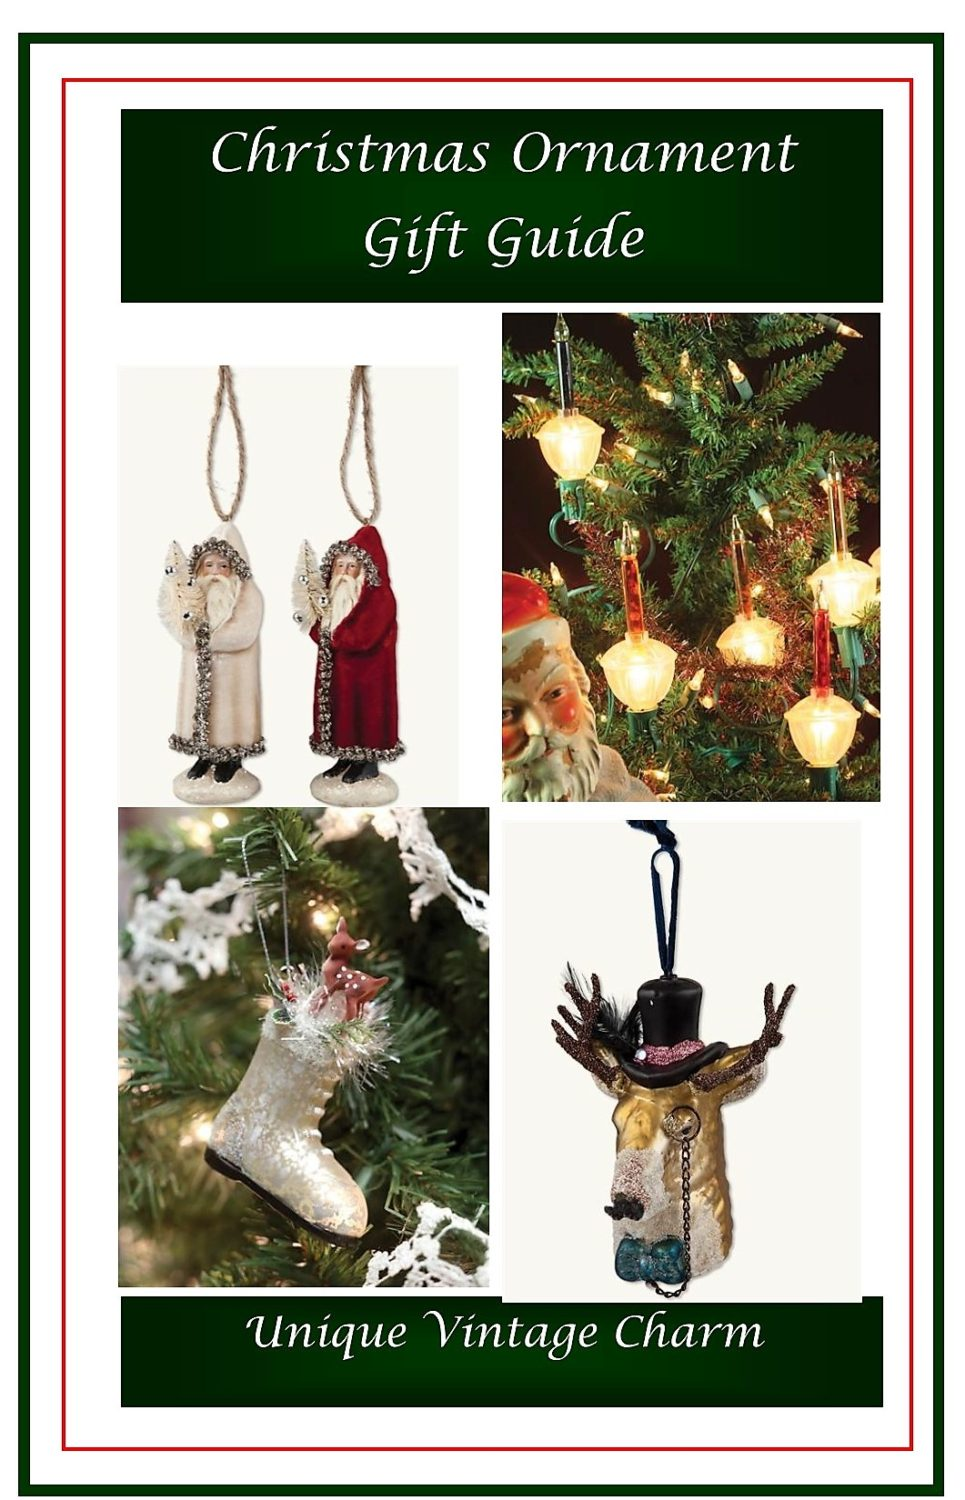 Christmas Ornament Gift Guide 1